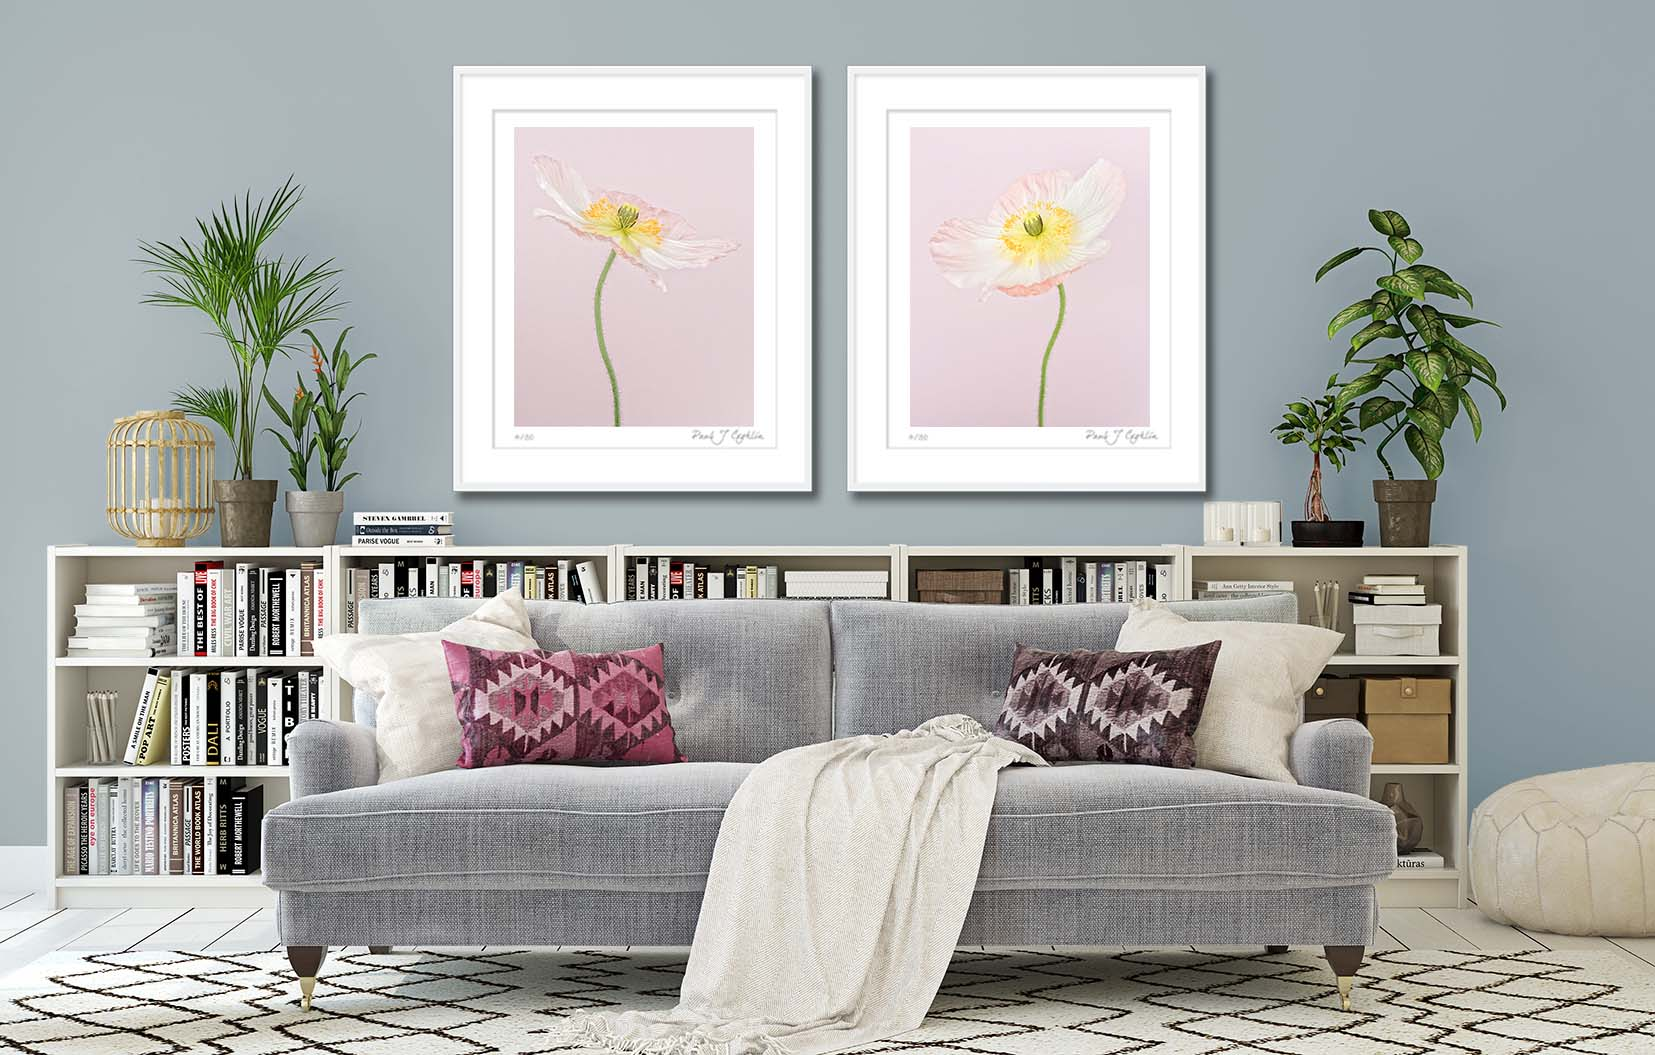 Pale Pink Icelandic Poppy. Limited edtition print of a pink poppy by fine art photographer Paul Coghlin FBIPP. Two photographic prints of pink poppies on the wall.